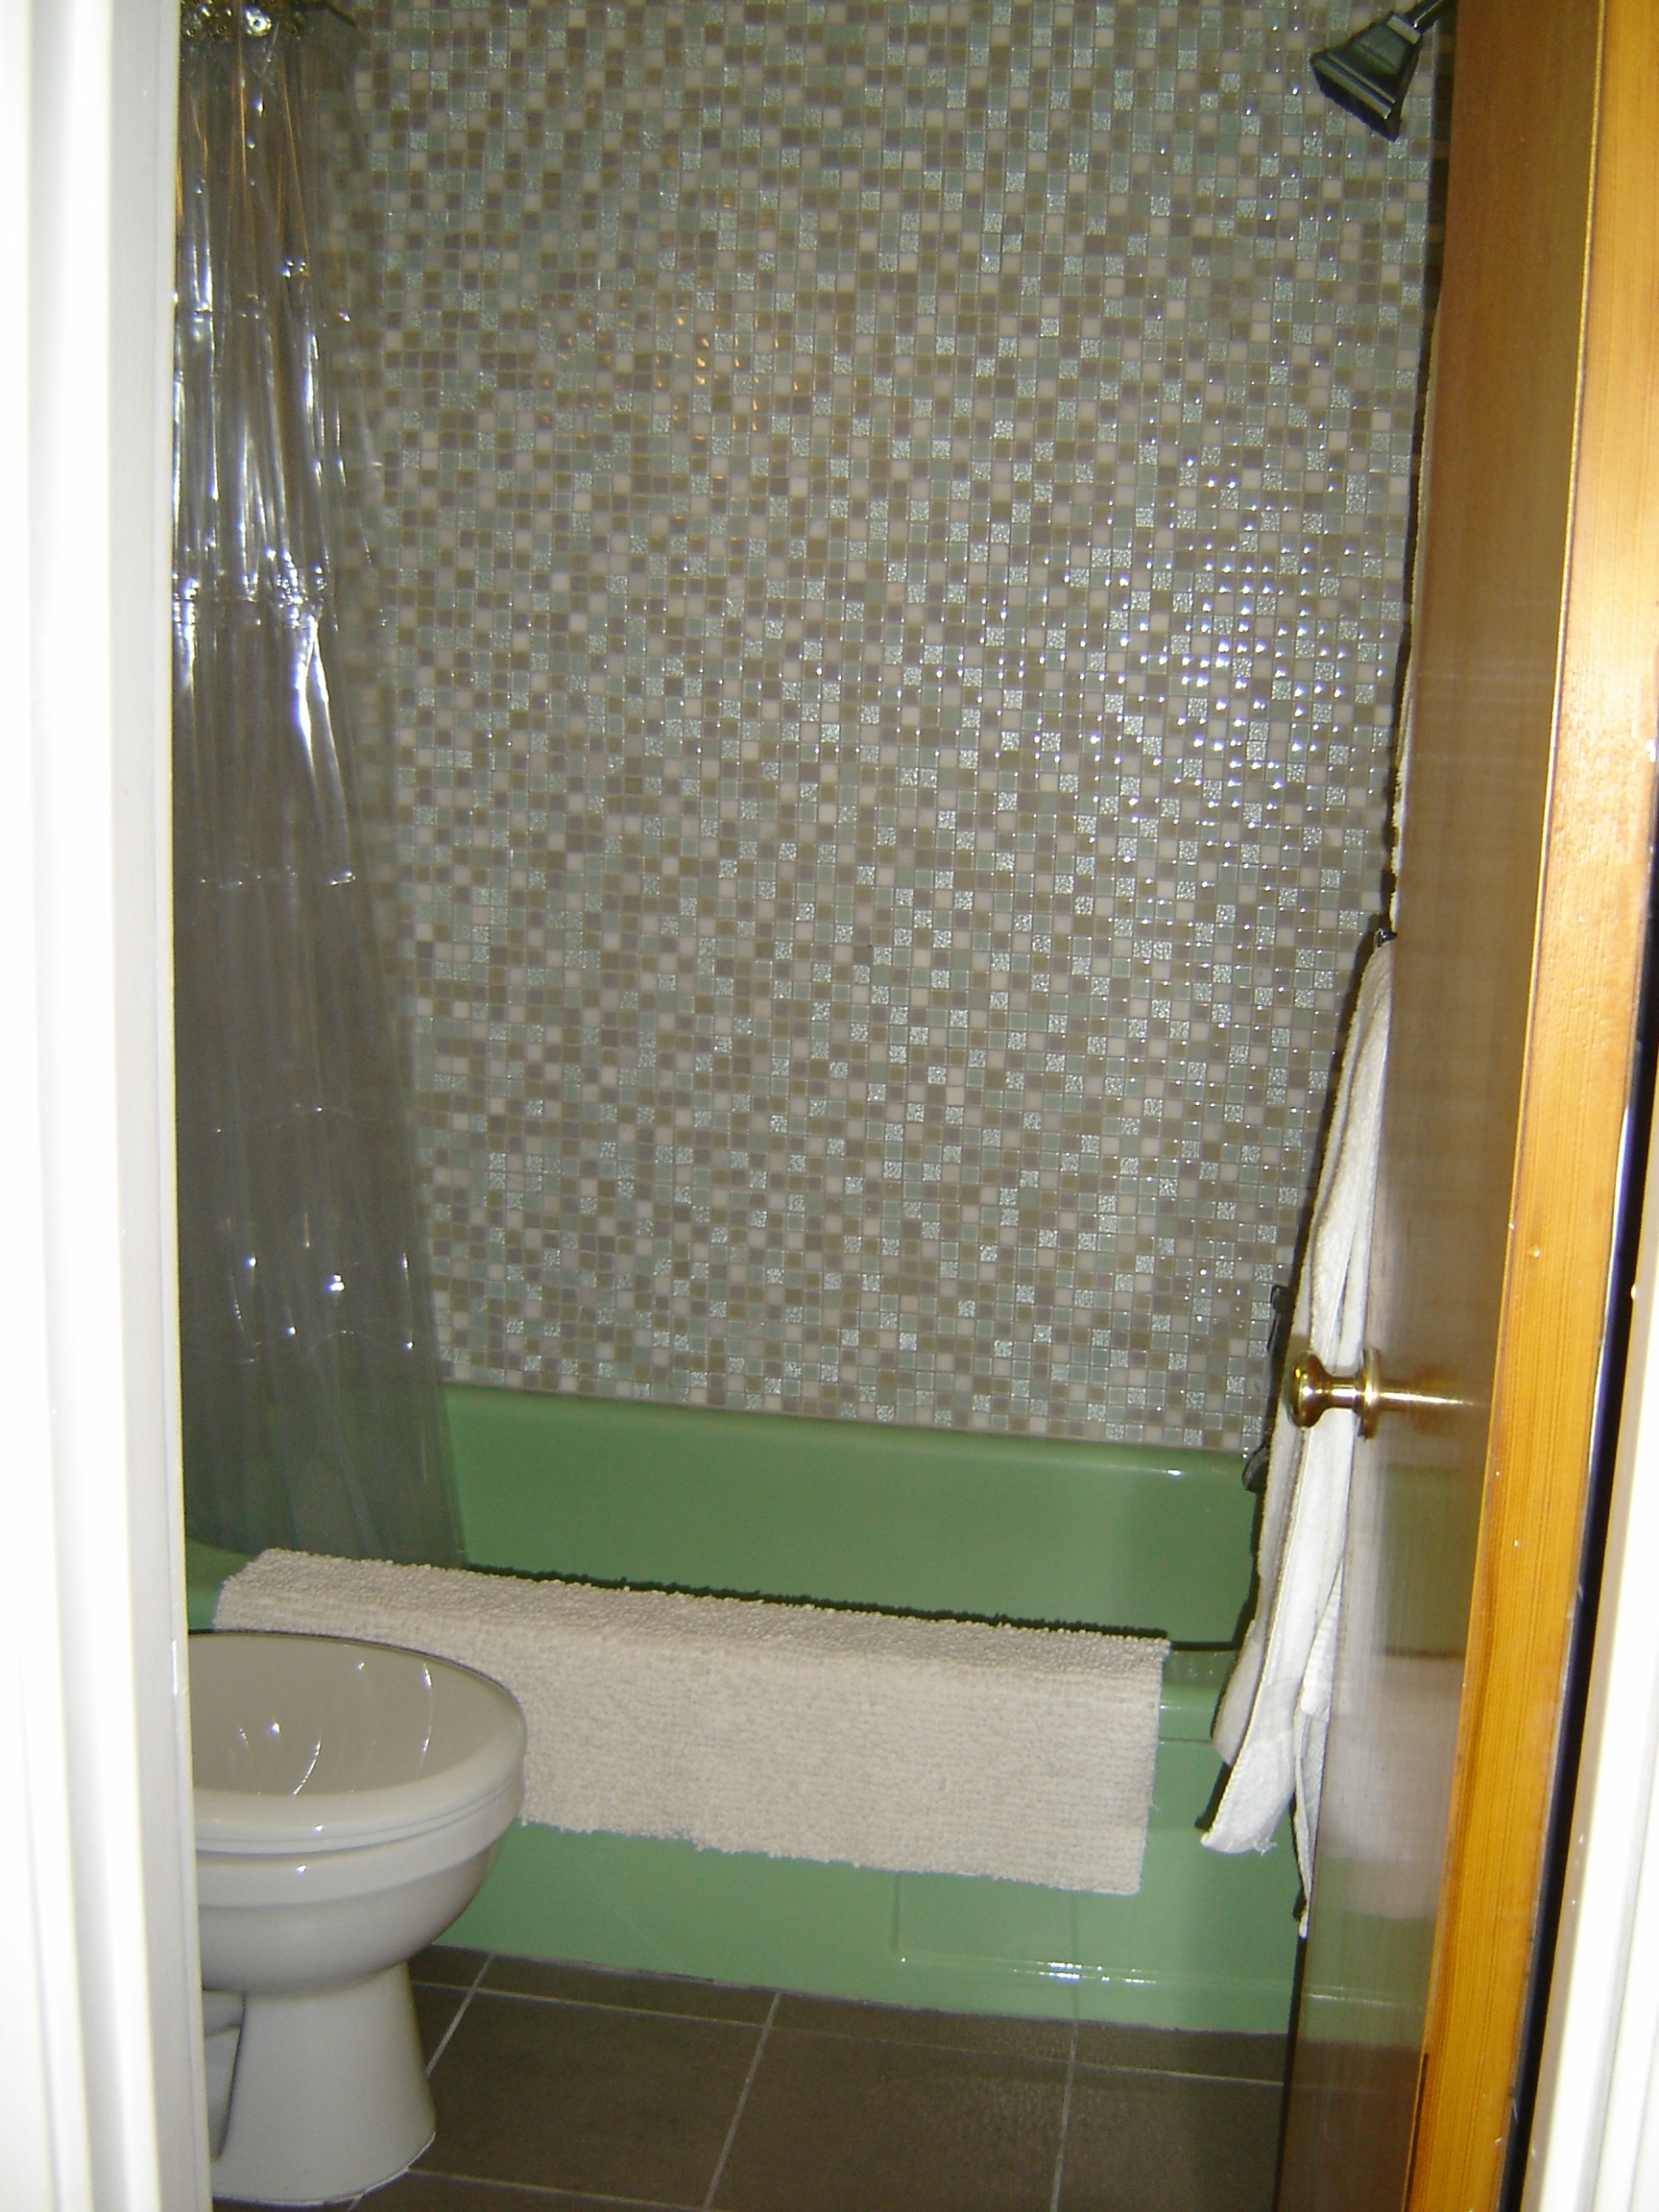 5000 bathroom remodel dsc09125 dsc09119 - Bathroom Remodel Denver